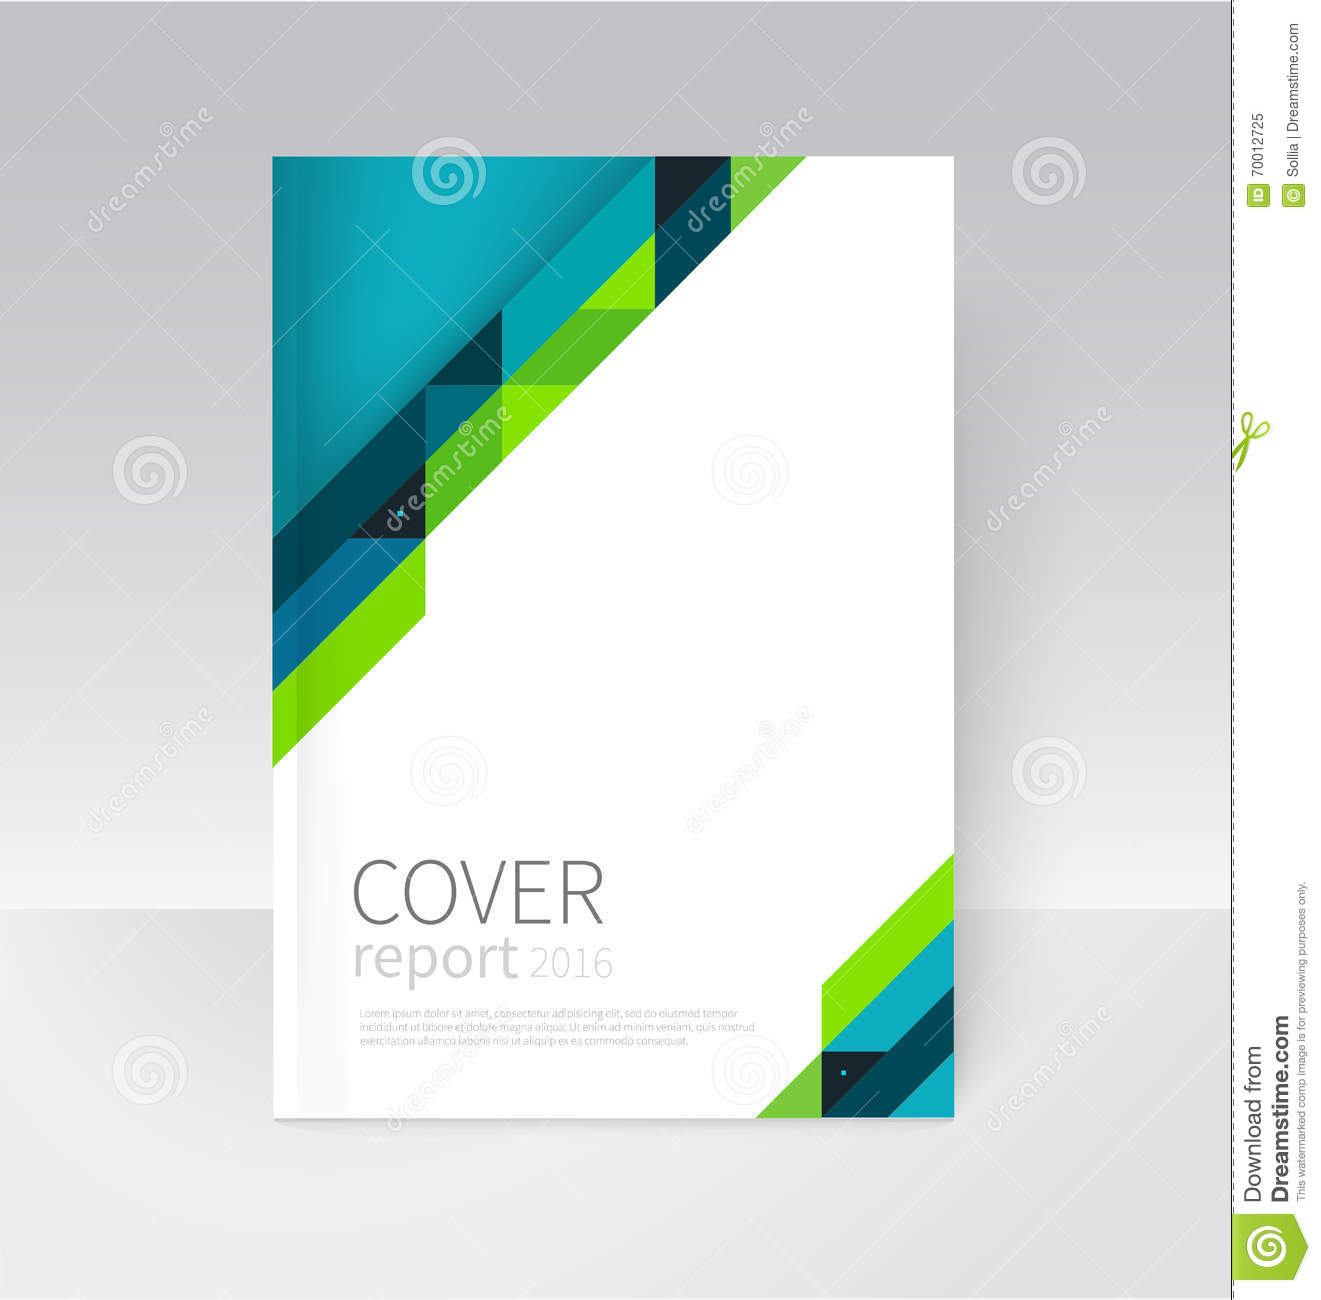 Captivating Brochure, Flyer, Poster, Annual Report Cover Template. Intended For Cover Template